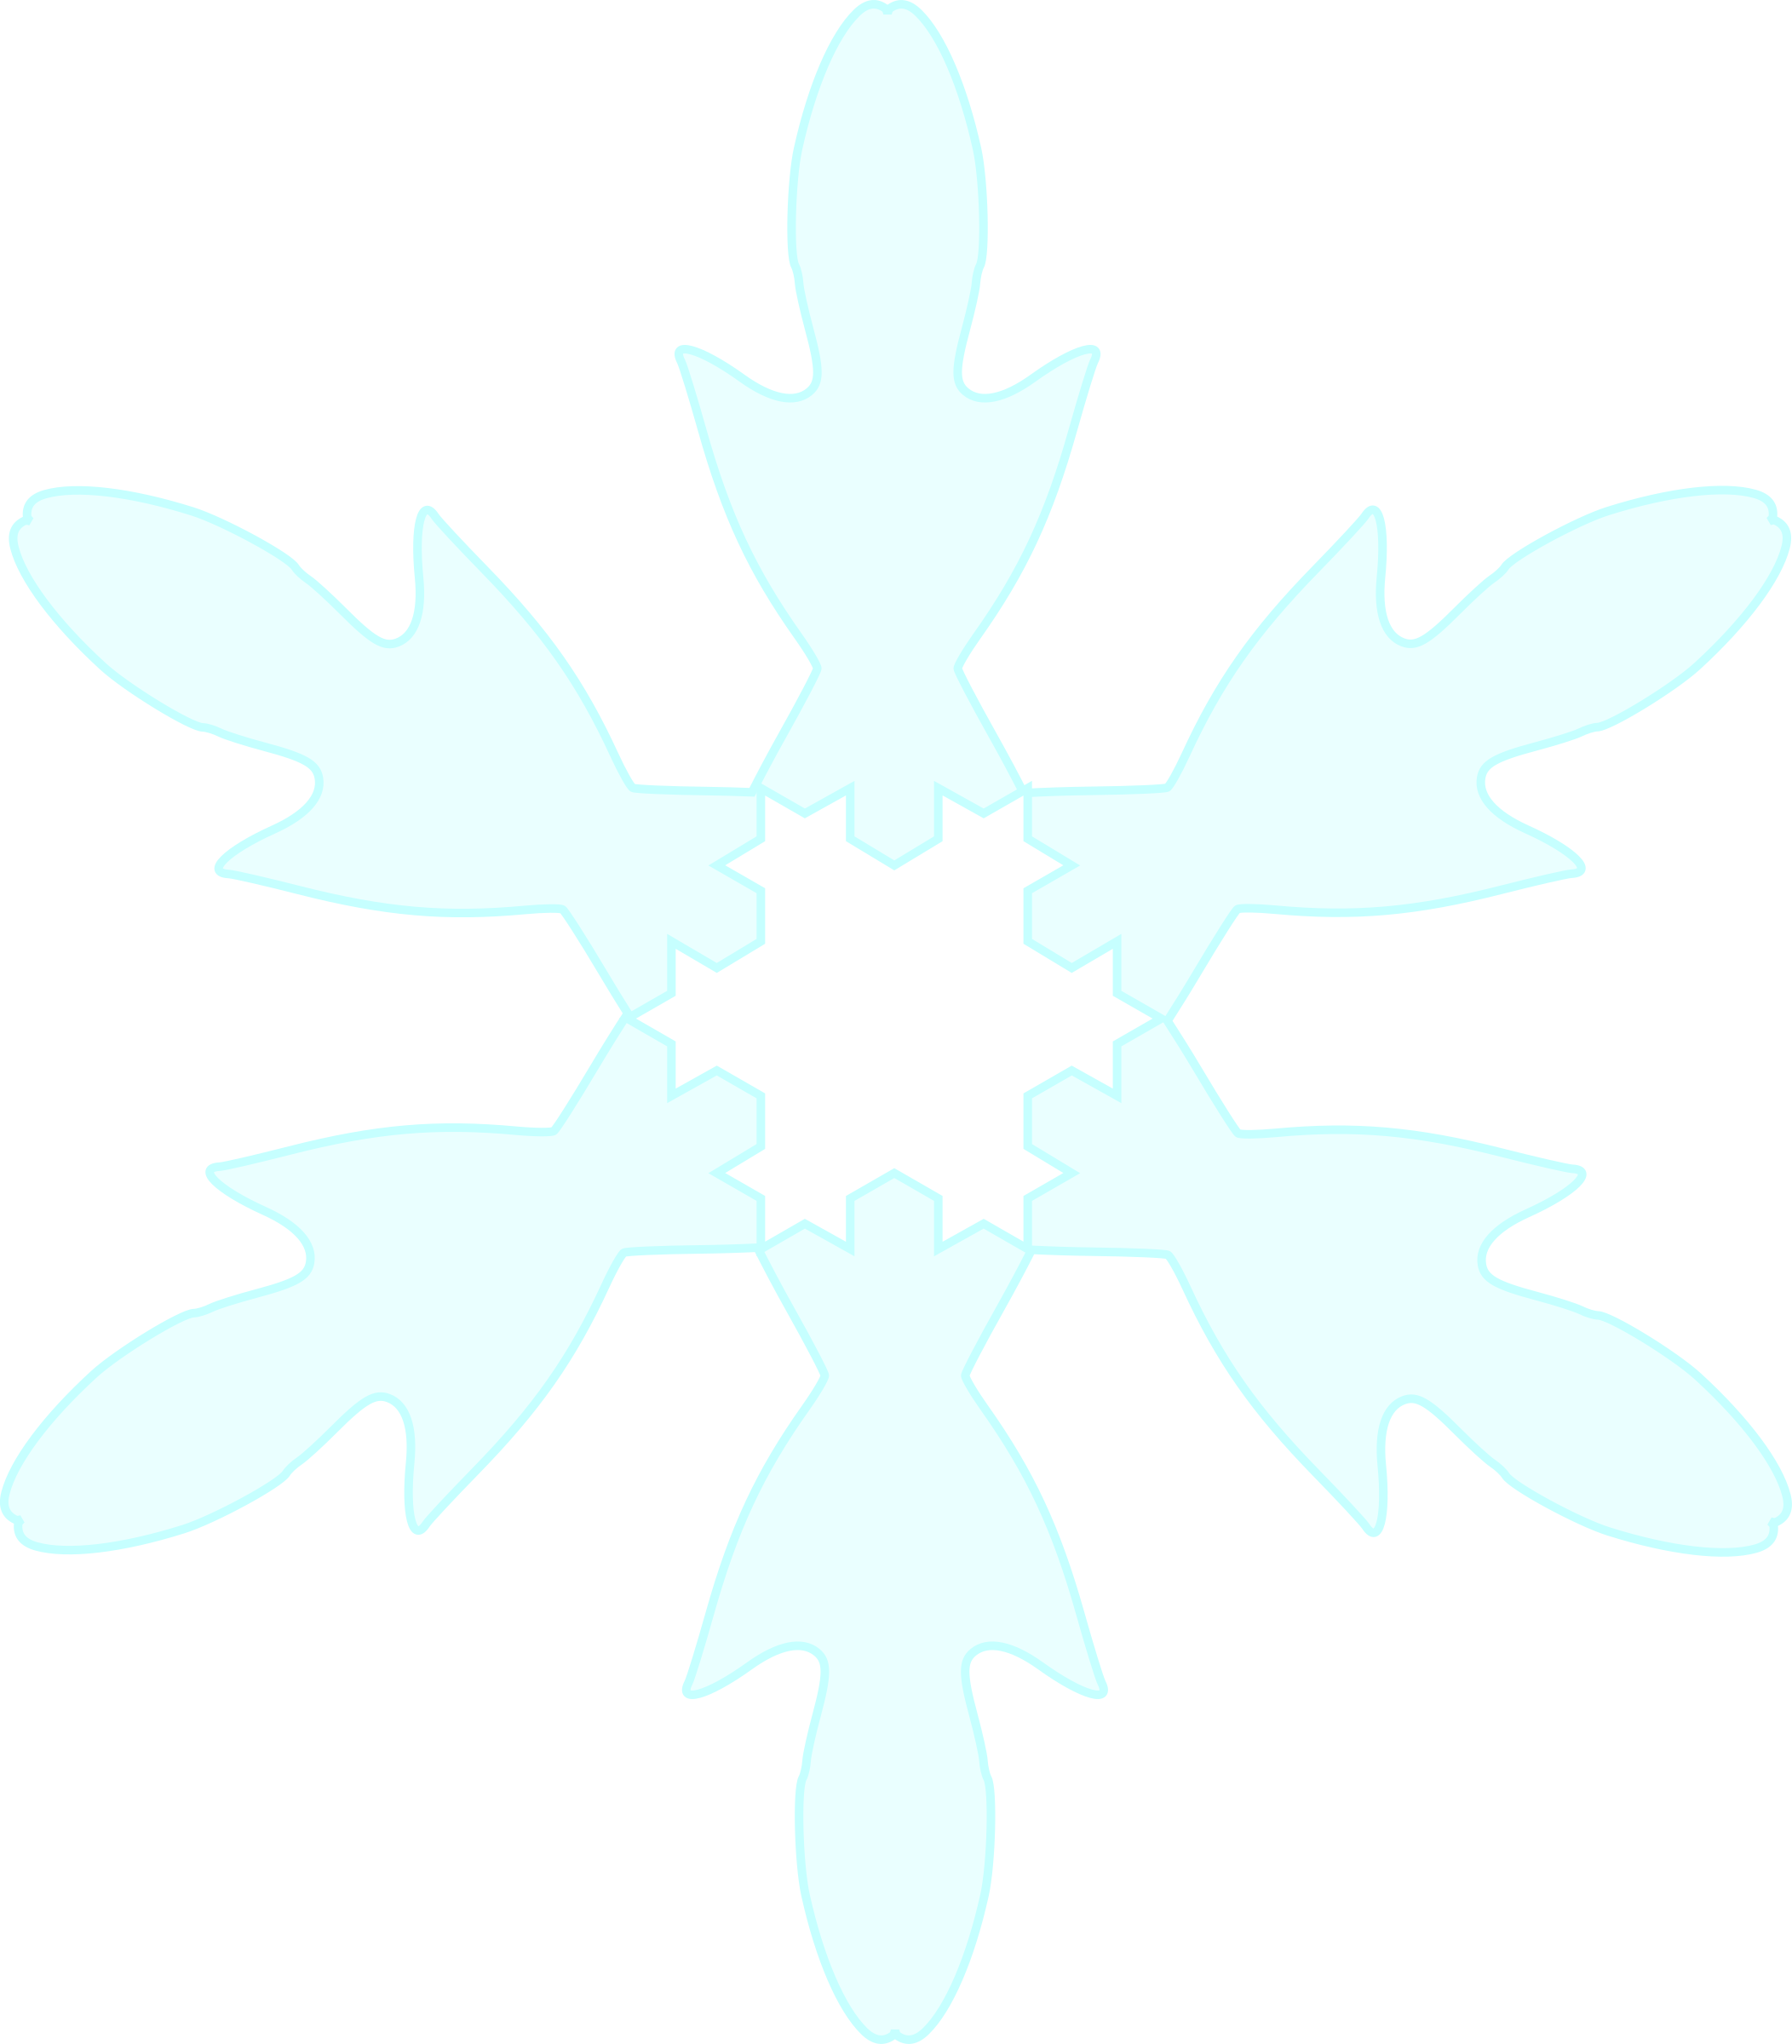 Snowflake 2 by Arvin61r58